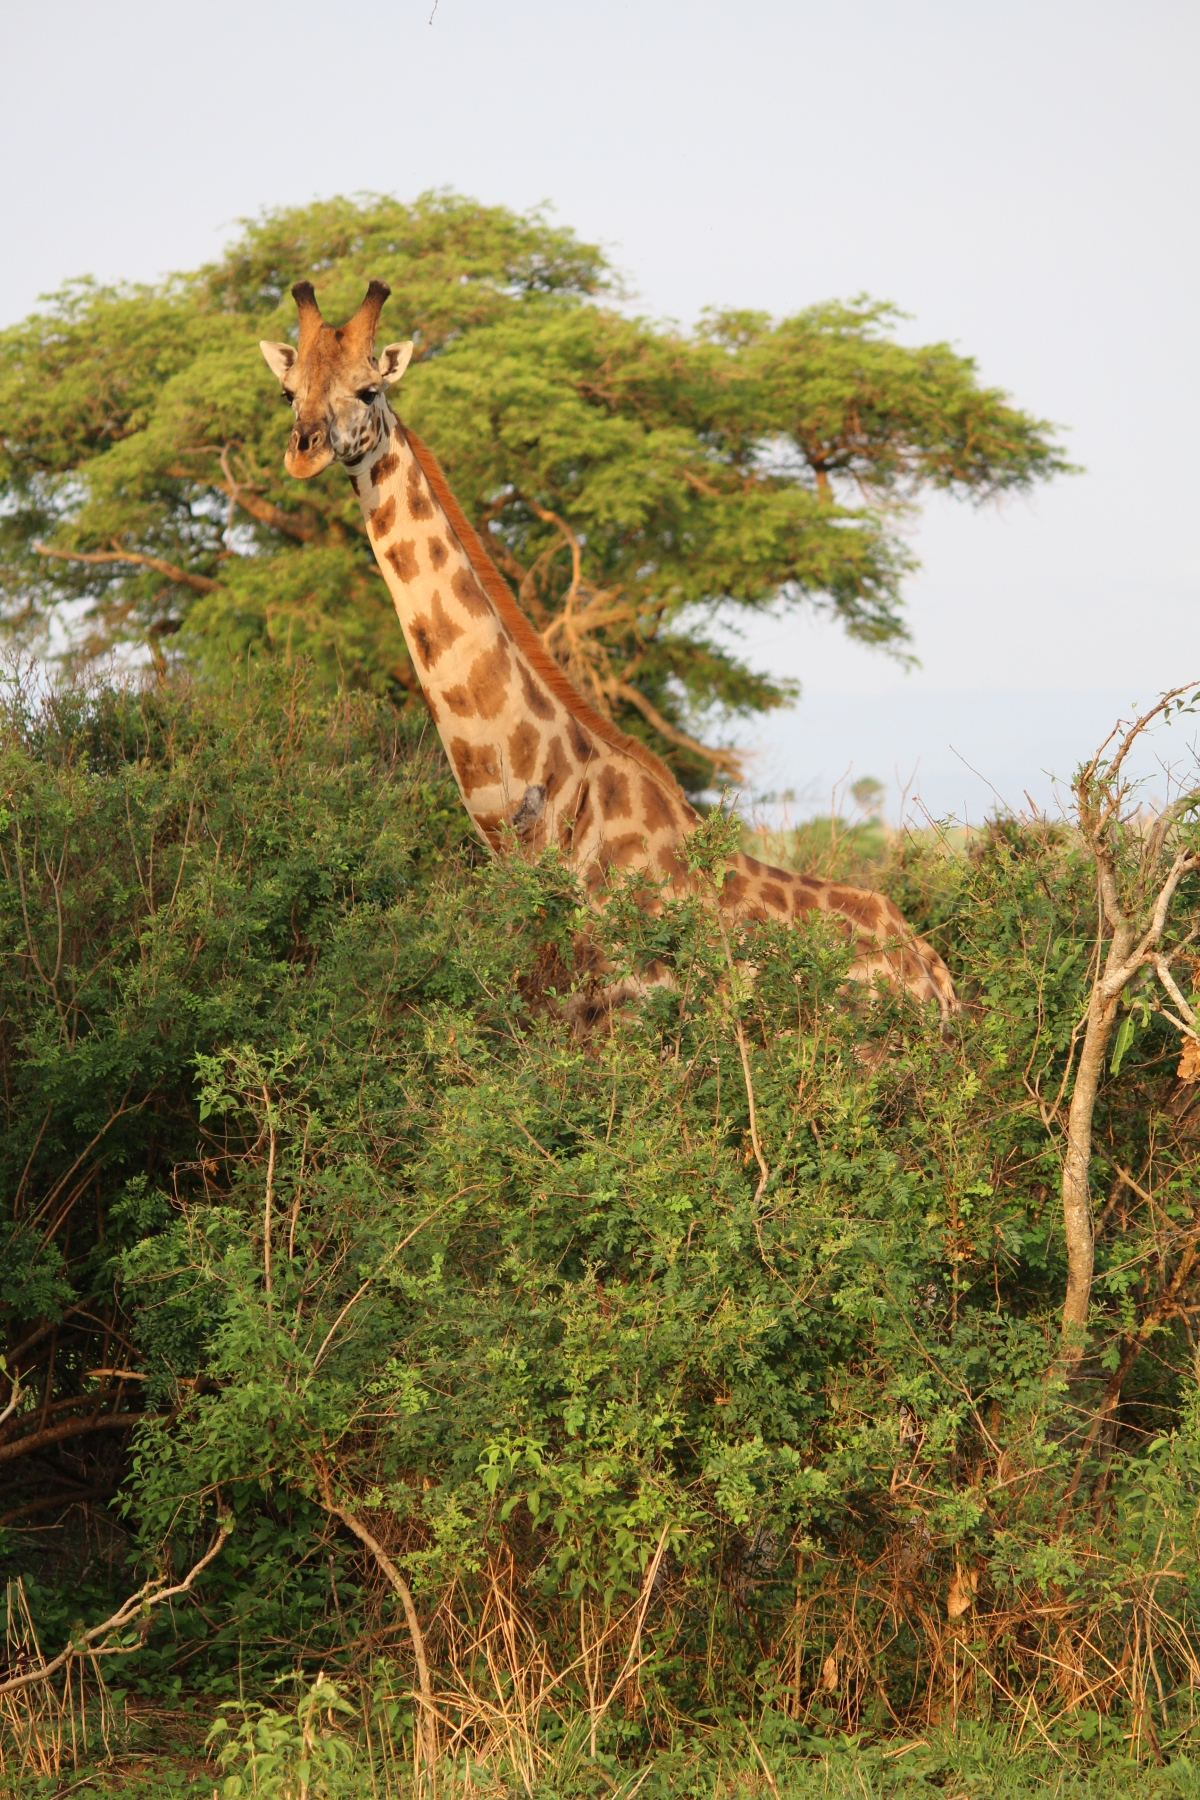 Giraffe at Murchison Falls National Park